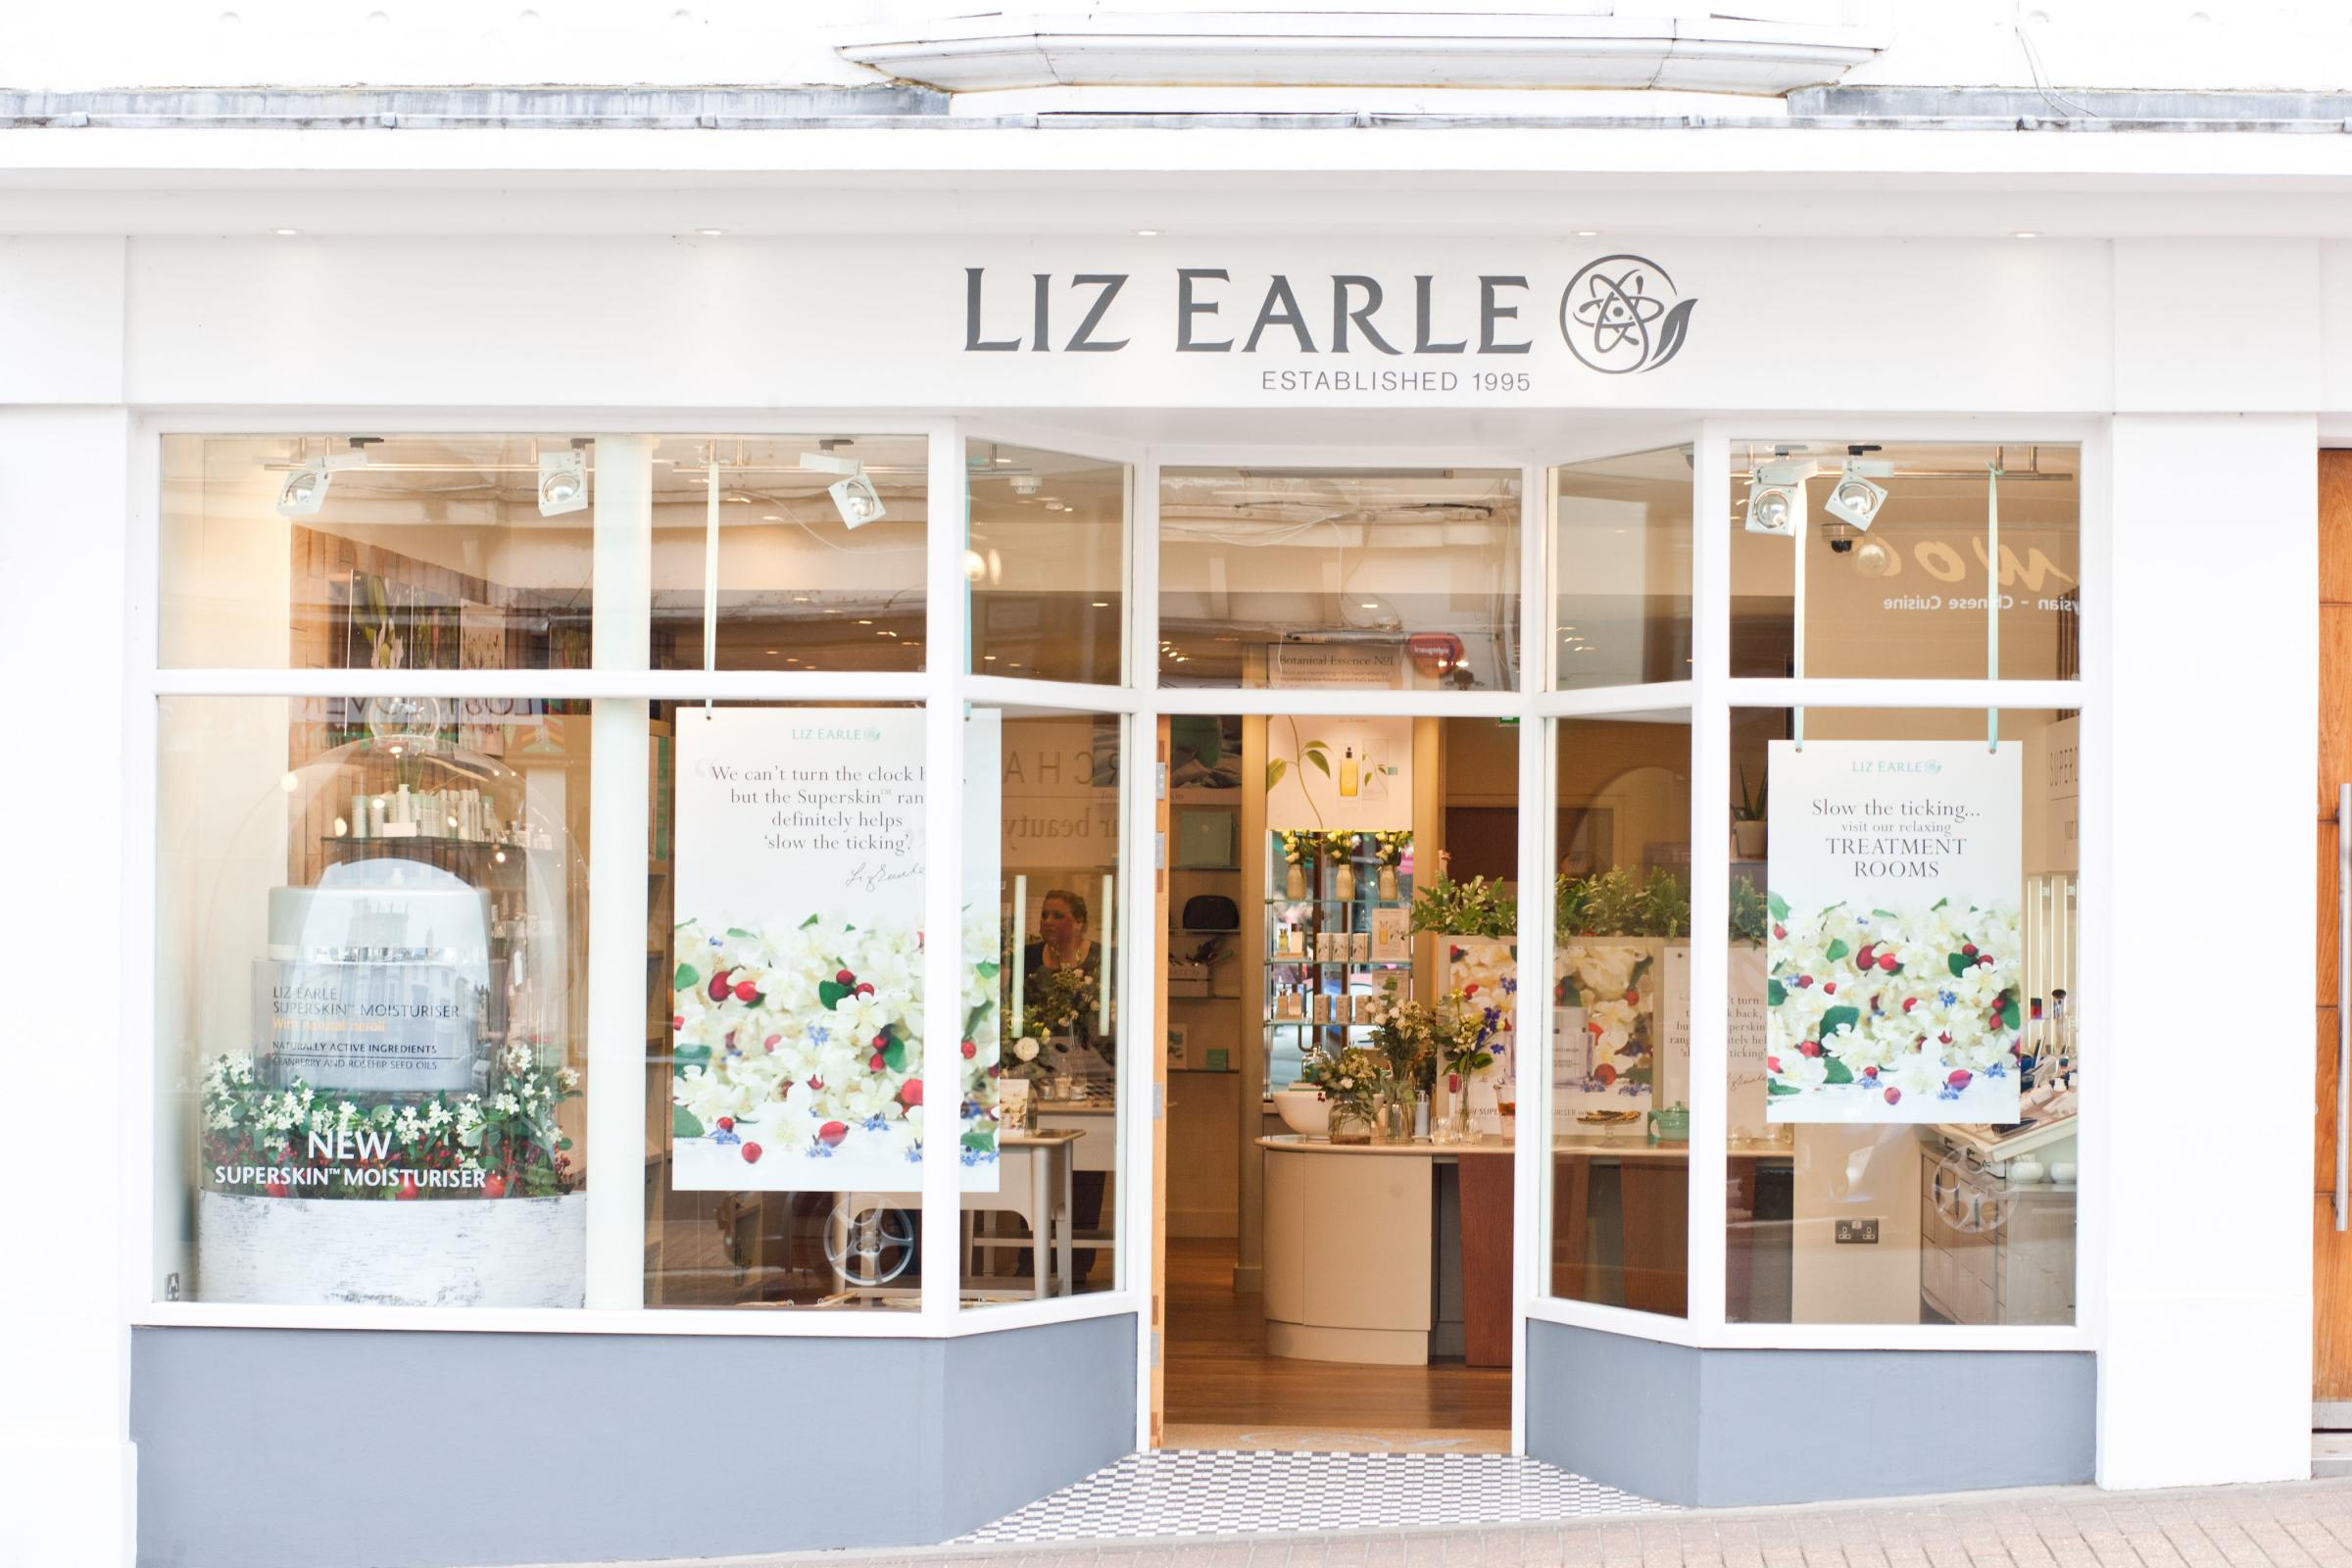 Liz Earle to shed up to 35 jobs — but business will remain on Isle of Wight